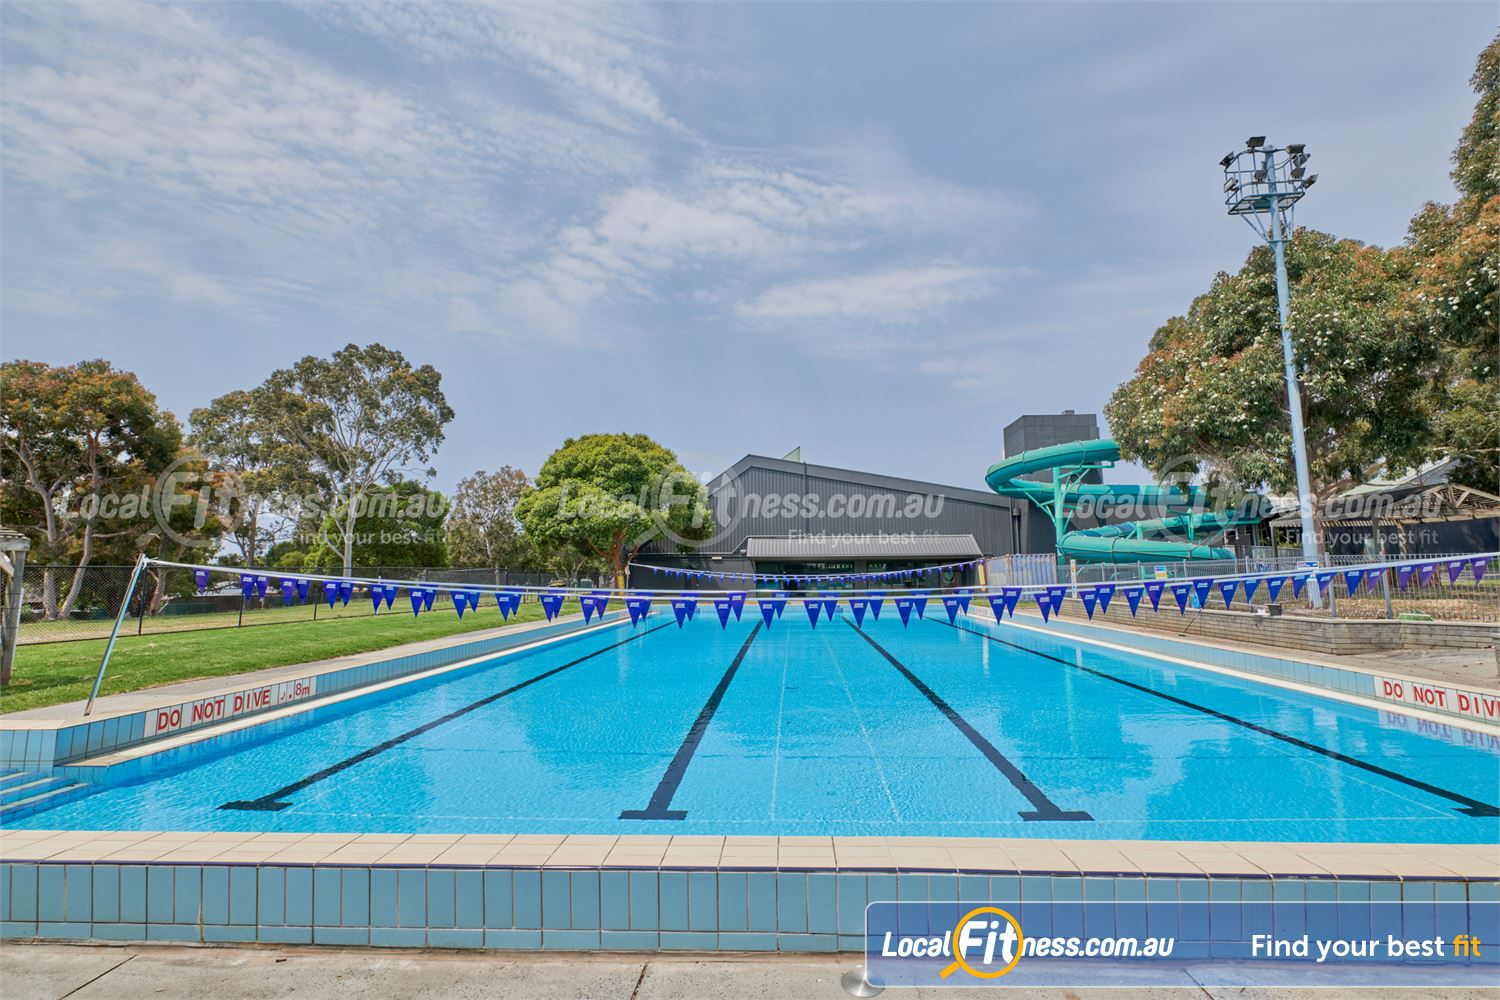 Knox Leisureworks Boronia 25-metre outdoor recreation pool is open during the summer months.